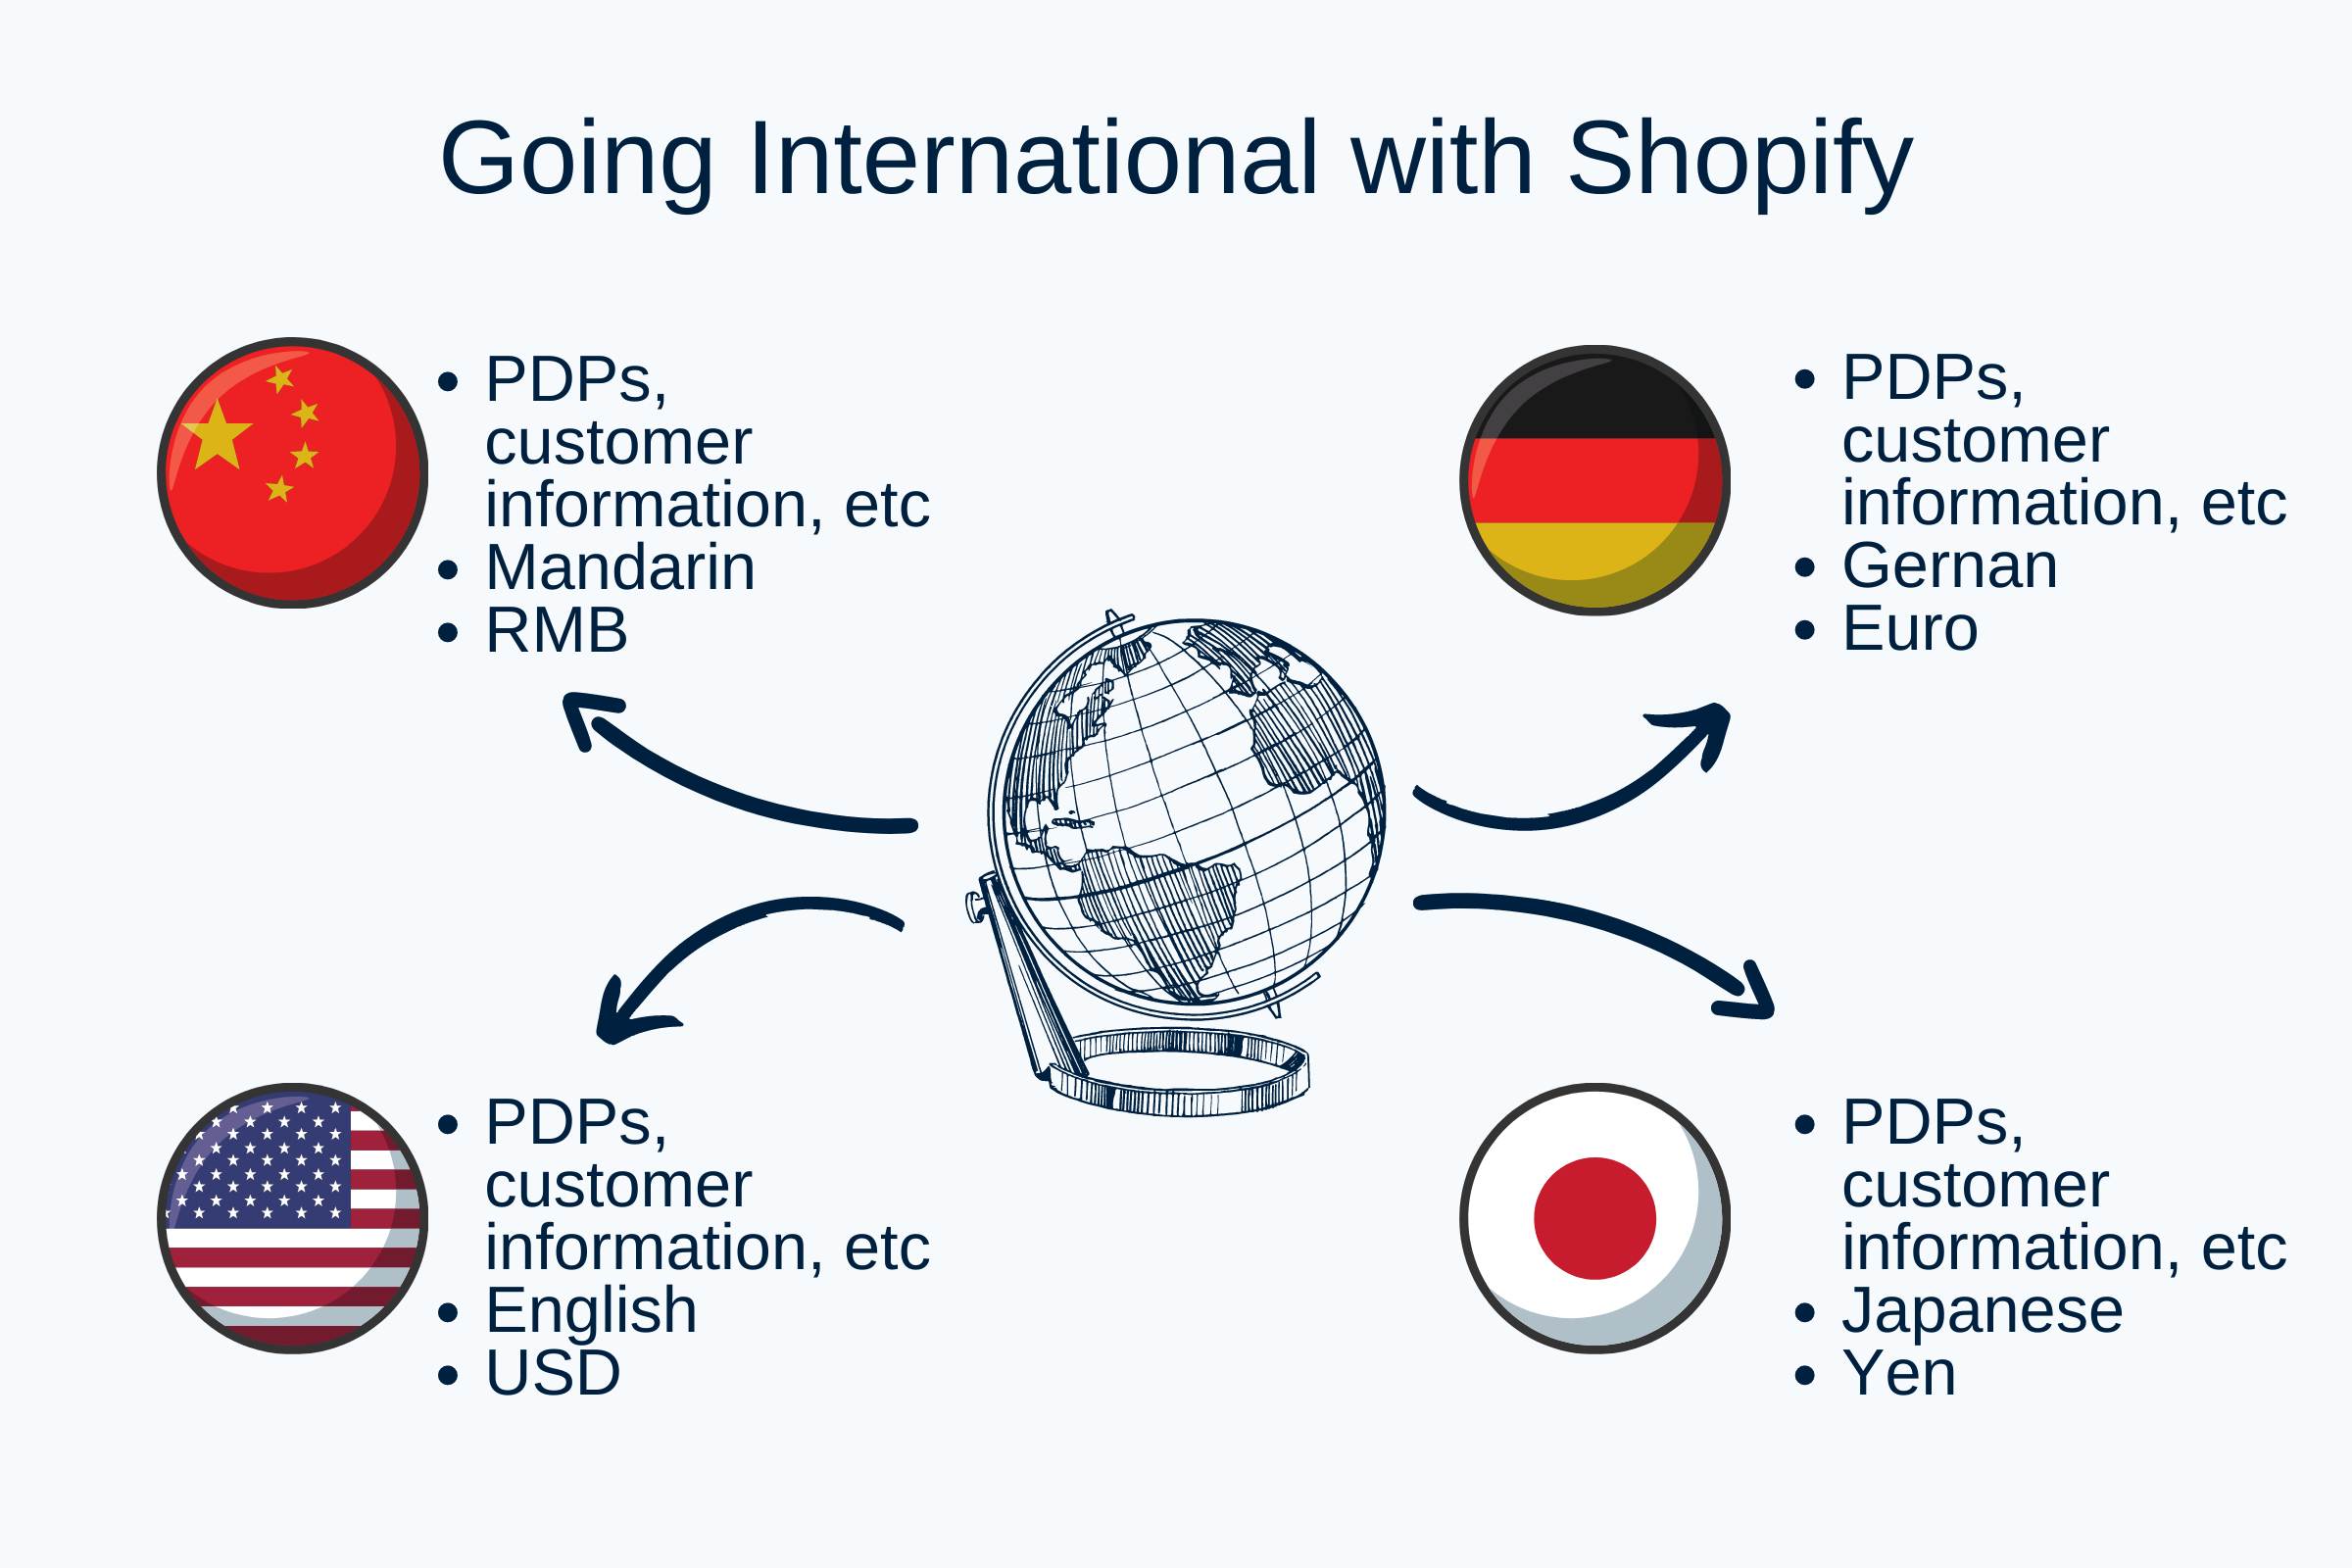 The difficulties of expanding internationally on Shopify